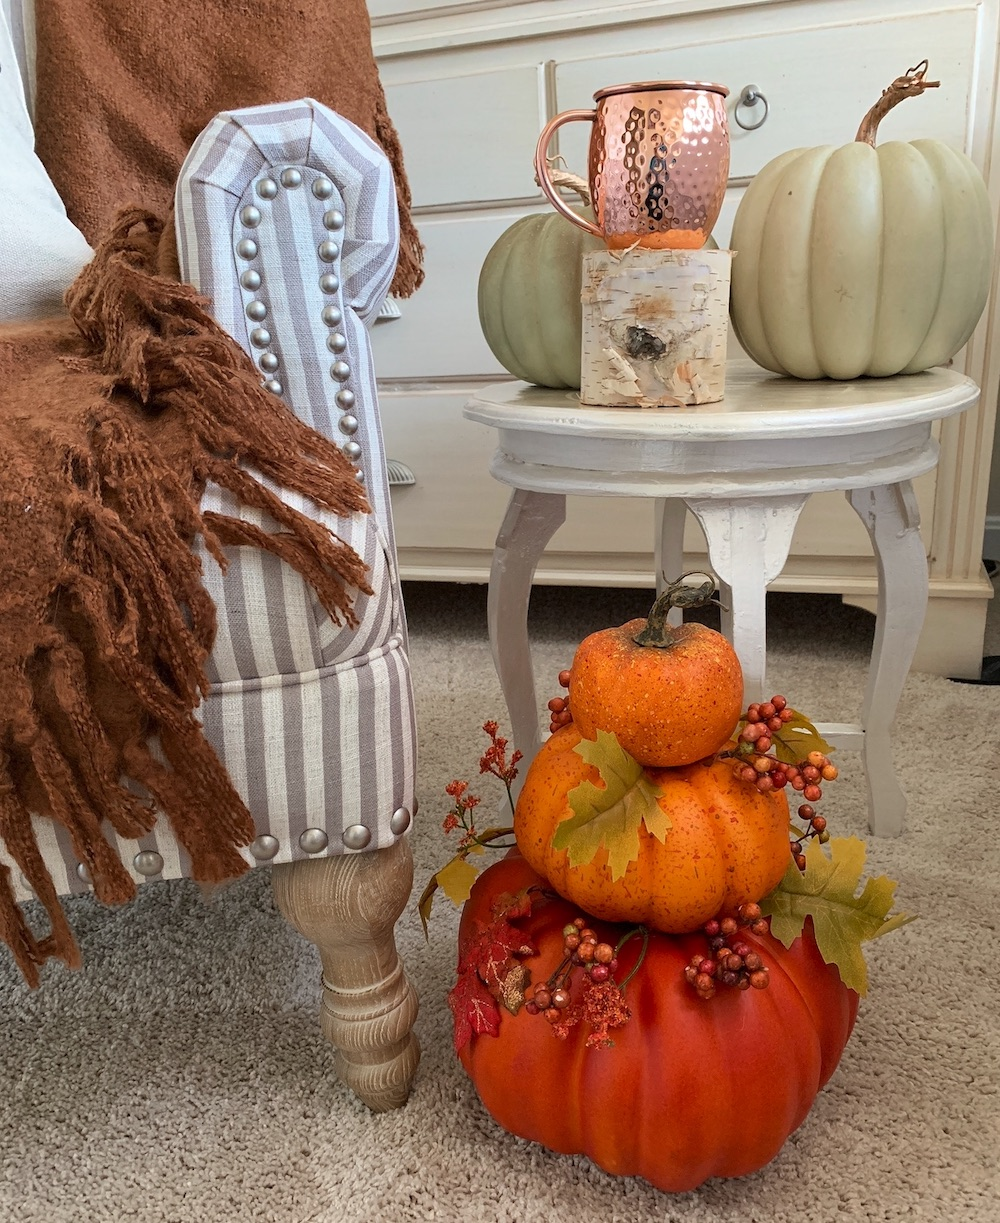 Fall Styling Ideas Side Table with Pumpkin Decor #DIY #DIYDecor #AutumnDecor #FallDecor #AutumnDecorDIY